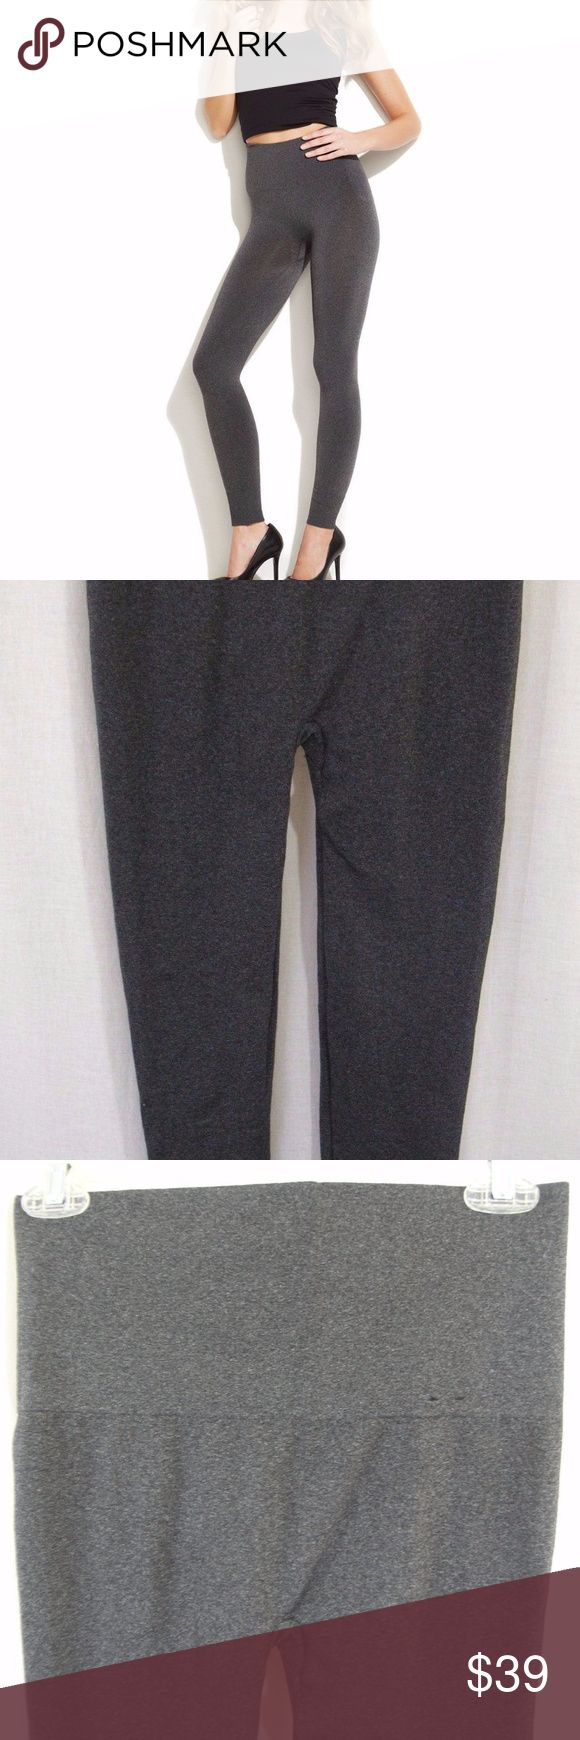 Spanx Star Power Seamless Cuffed Leggings Shaping Spanx Seamless Shaping Leggings Women's Size M Star Power Cuffed Gray NEW  Women's Size Medium Wide waistband for shaping Ribbed cuff at bottom of leg Smooth and sleek look Body Shaping Stretch material 51% Nylon 40% polyester 9% Spandex New without tags SPANX Pants Leggings